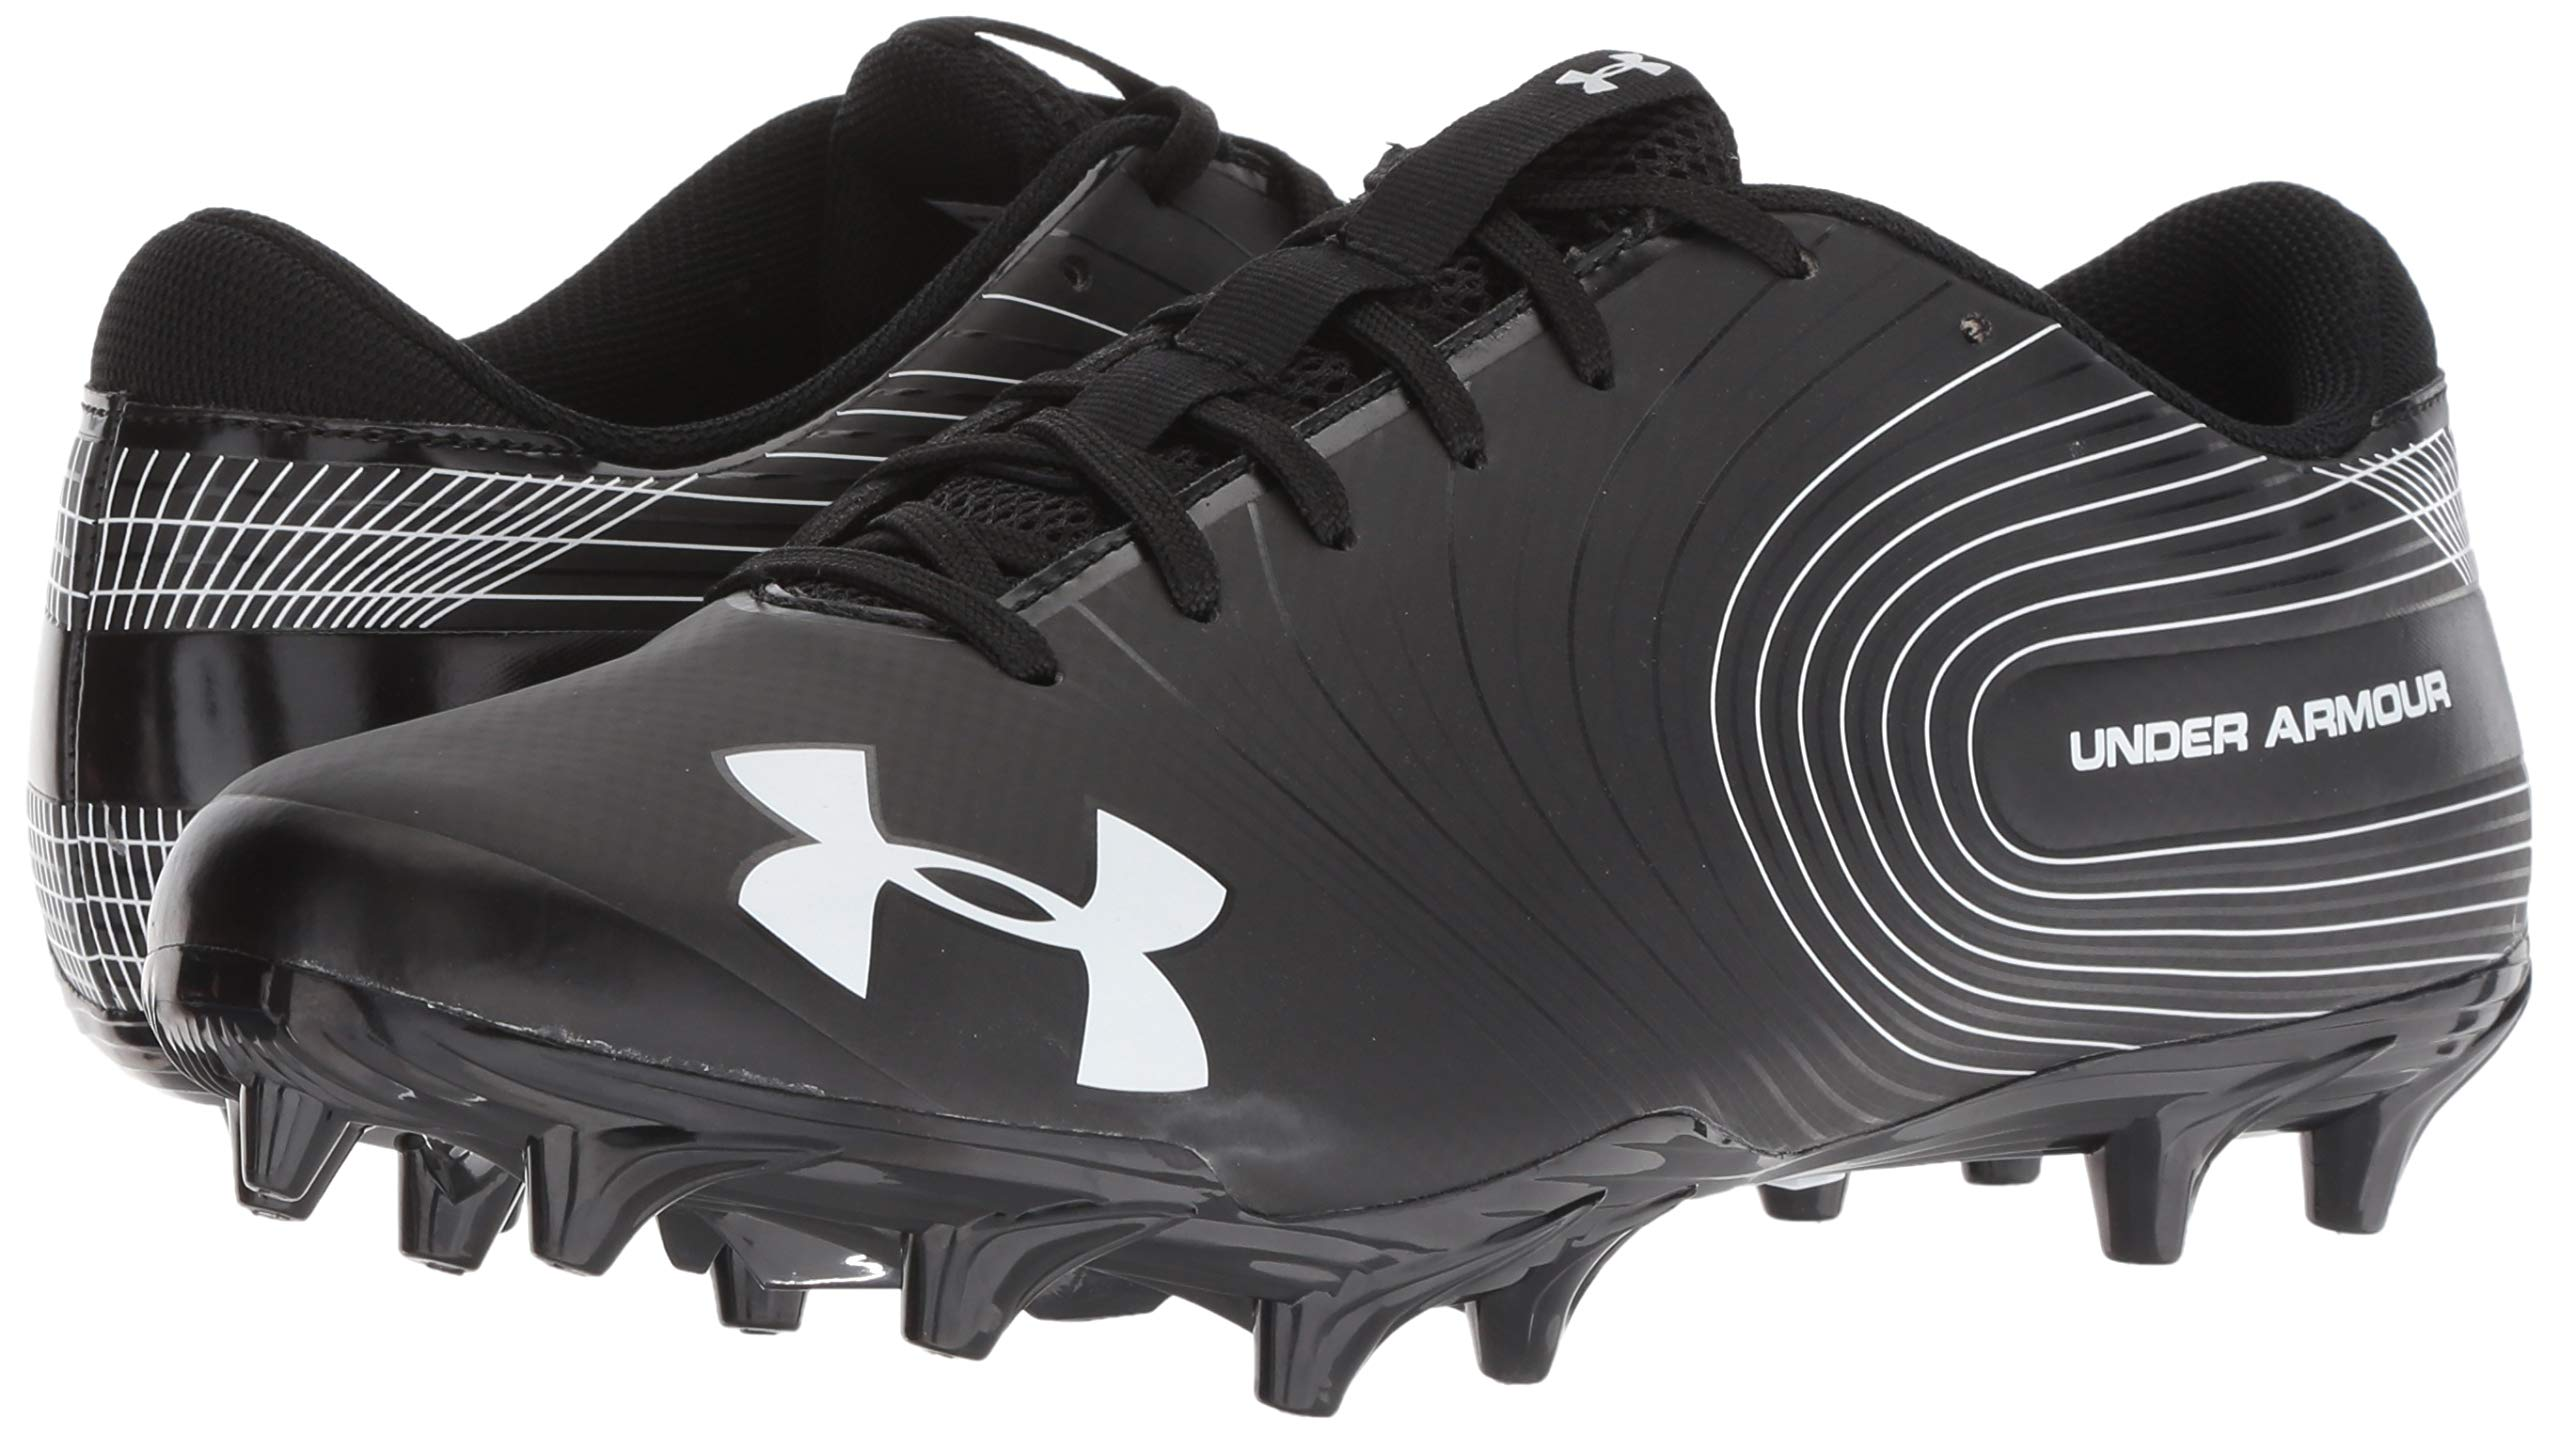 Under Armour Men's Speed Phantom MC Football Shoe Black (001)/White 6.5 by Under Armour (Image #6)